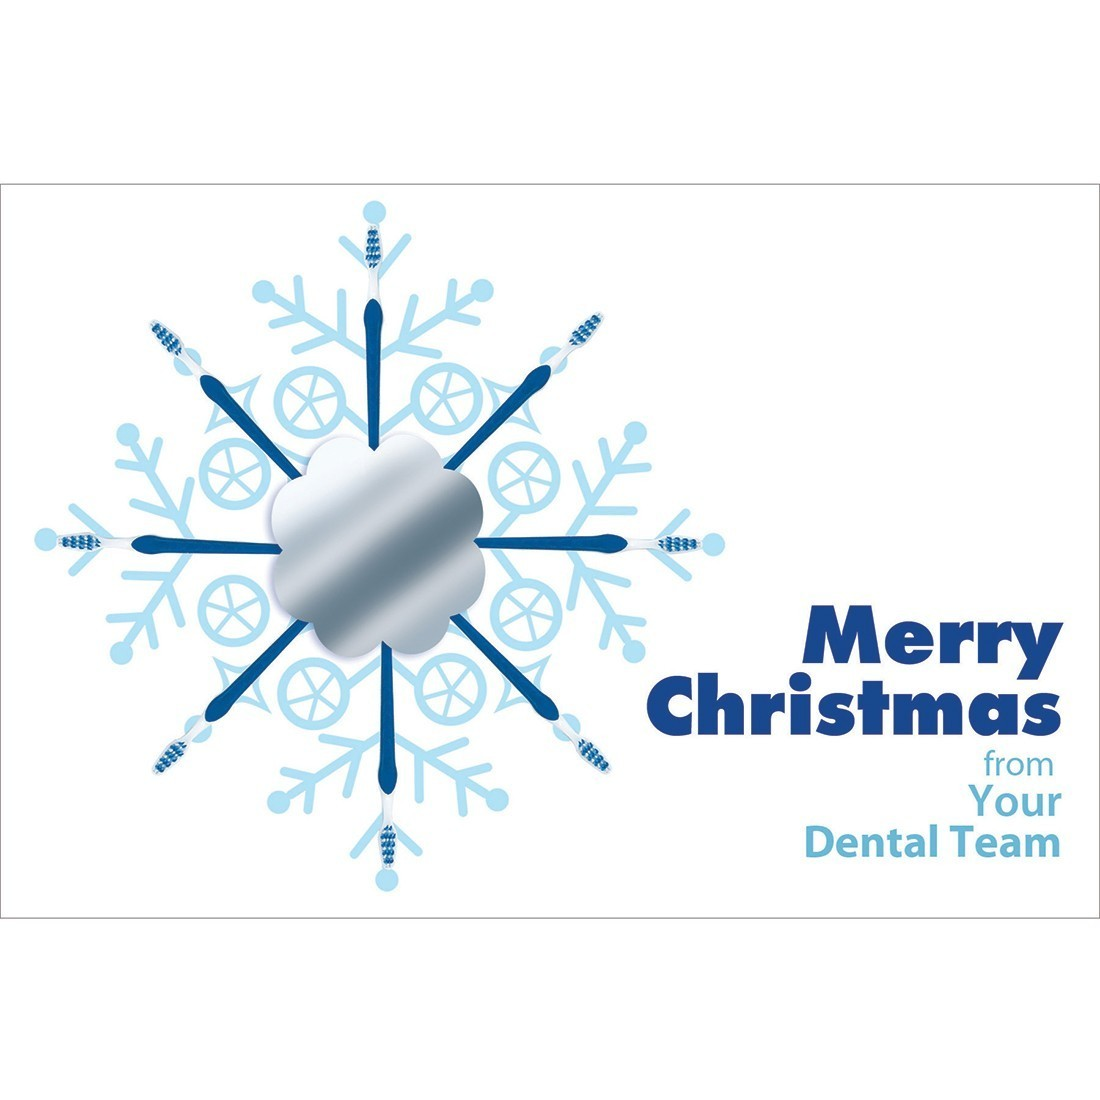 Dental Team Merry Christmas Greeting Cards - SmileMakers